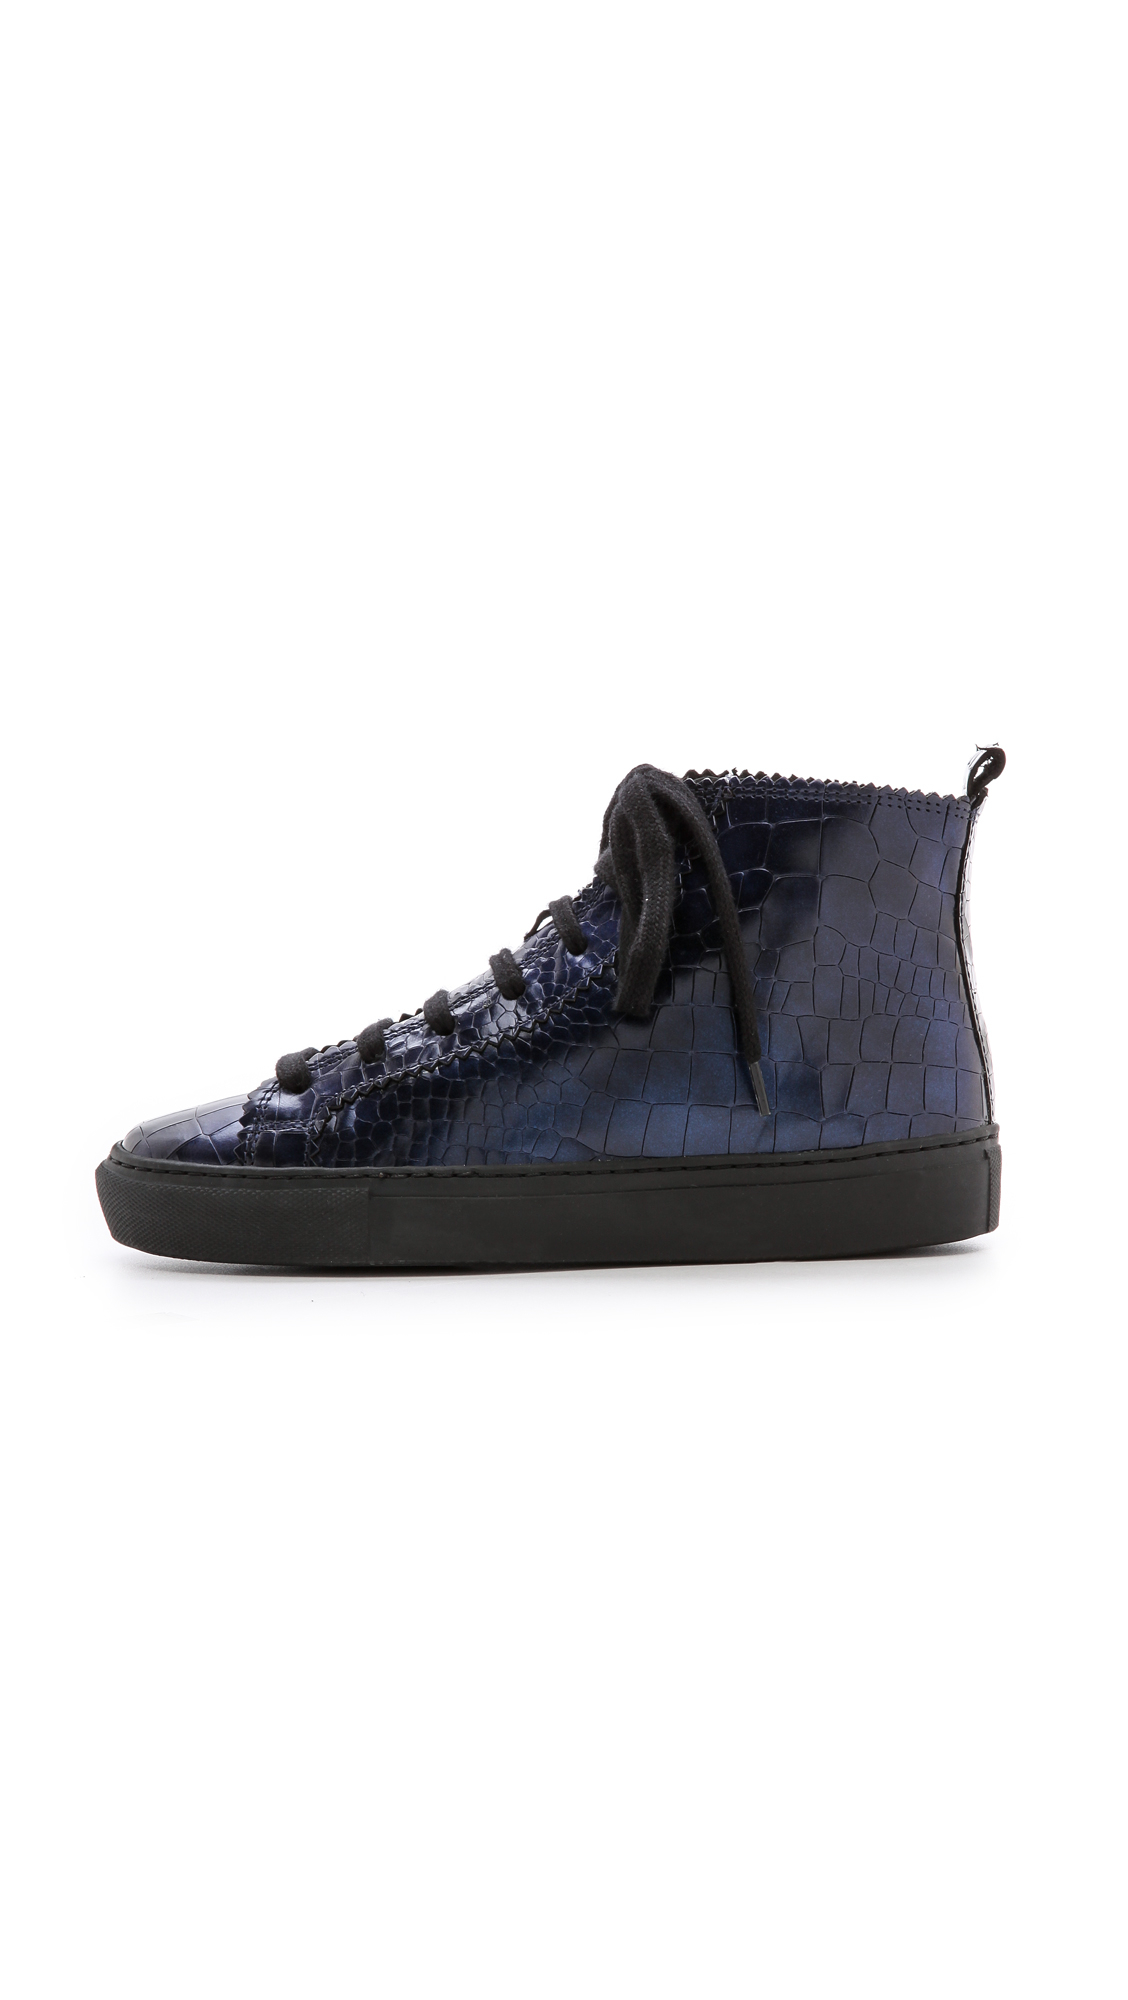 free shipping latest collections sale clearance Rachel Comey Embossed High-Top Sneakers nicekicks cheap price ptBUhDORo